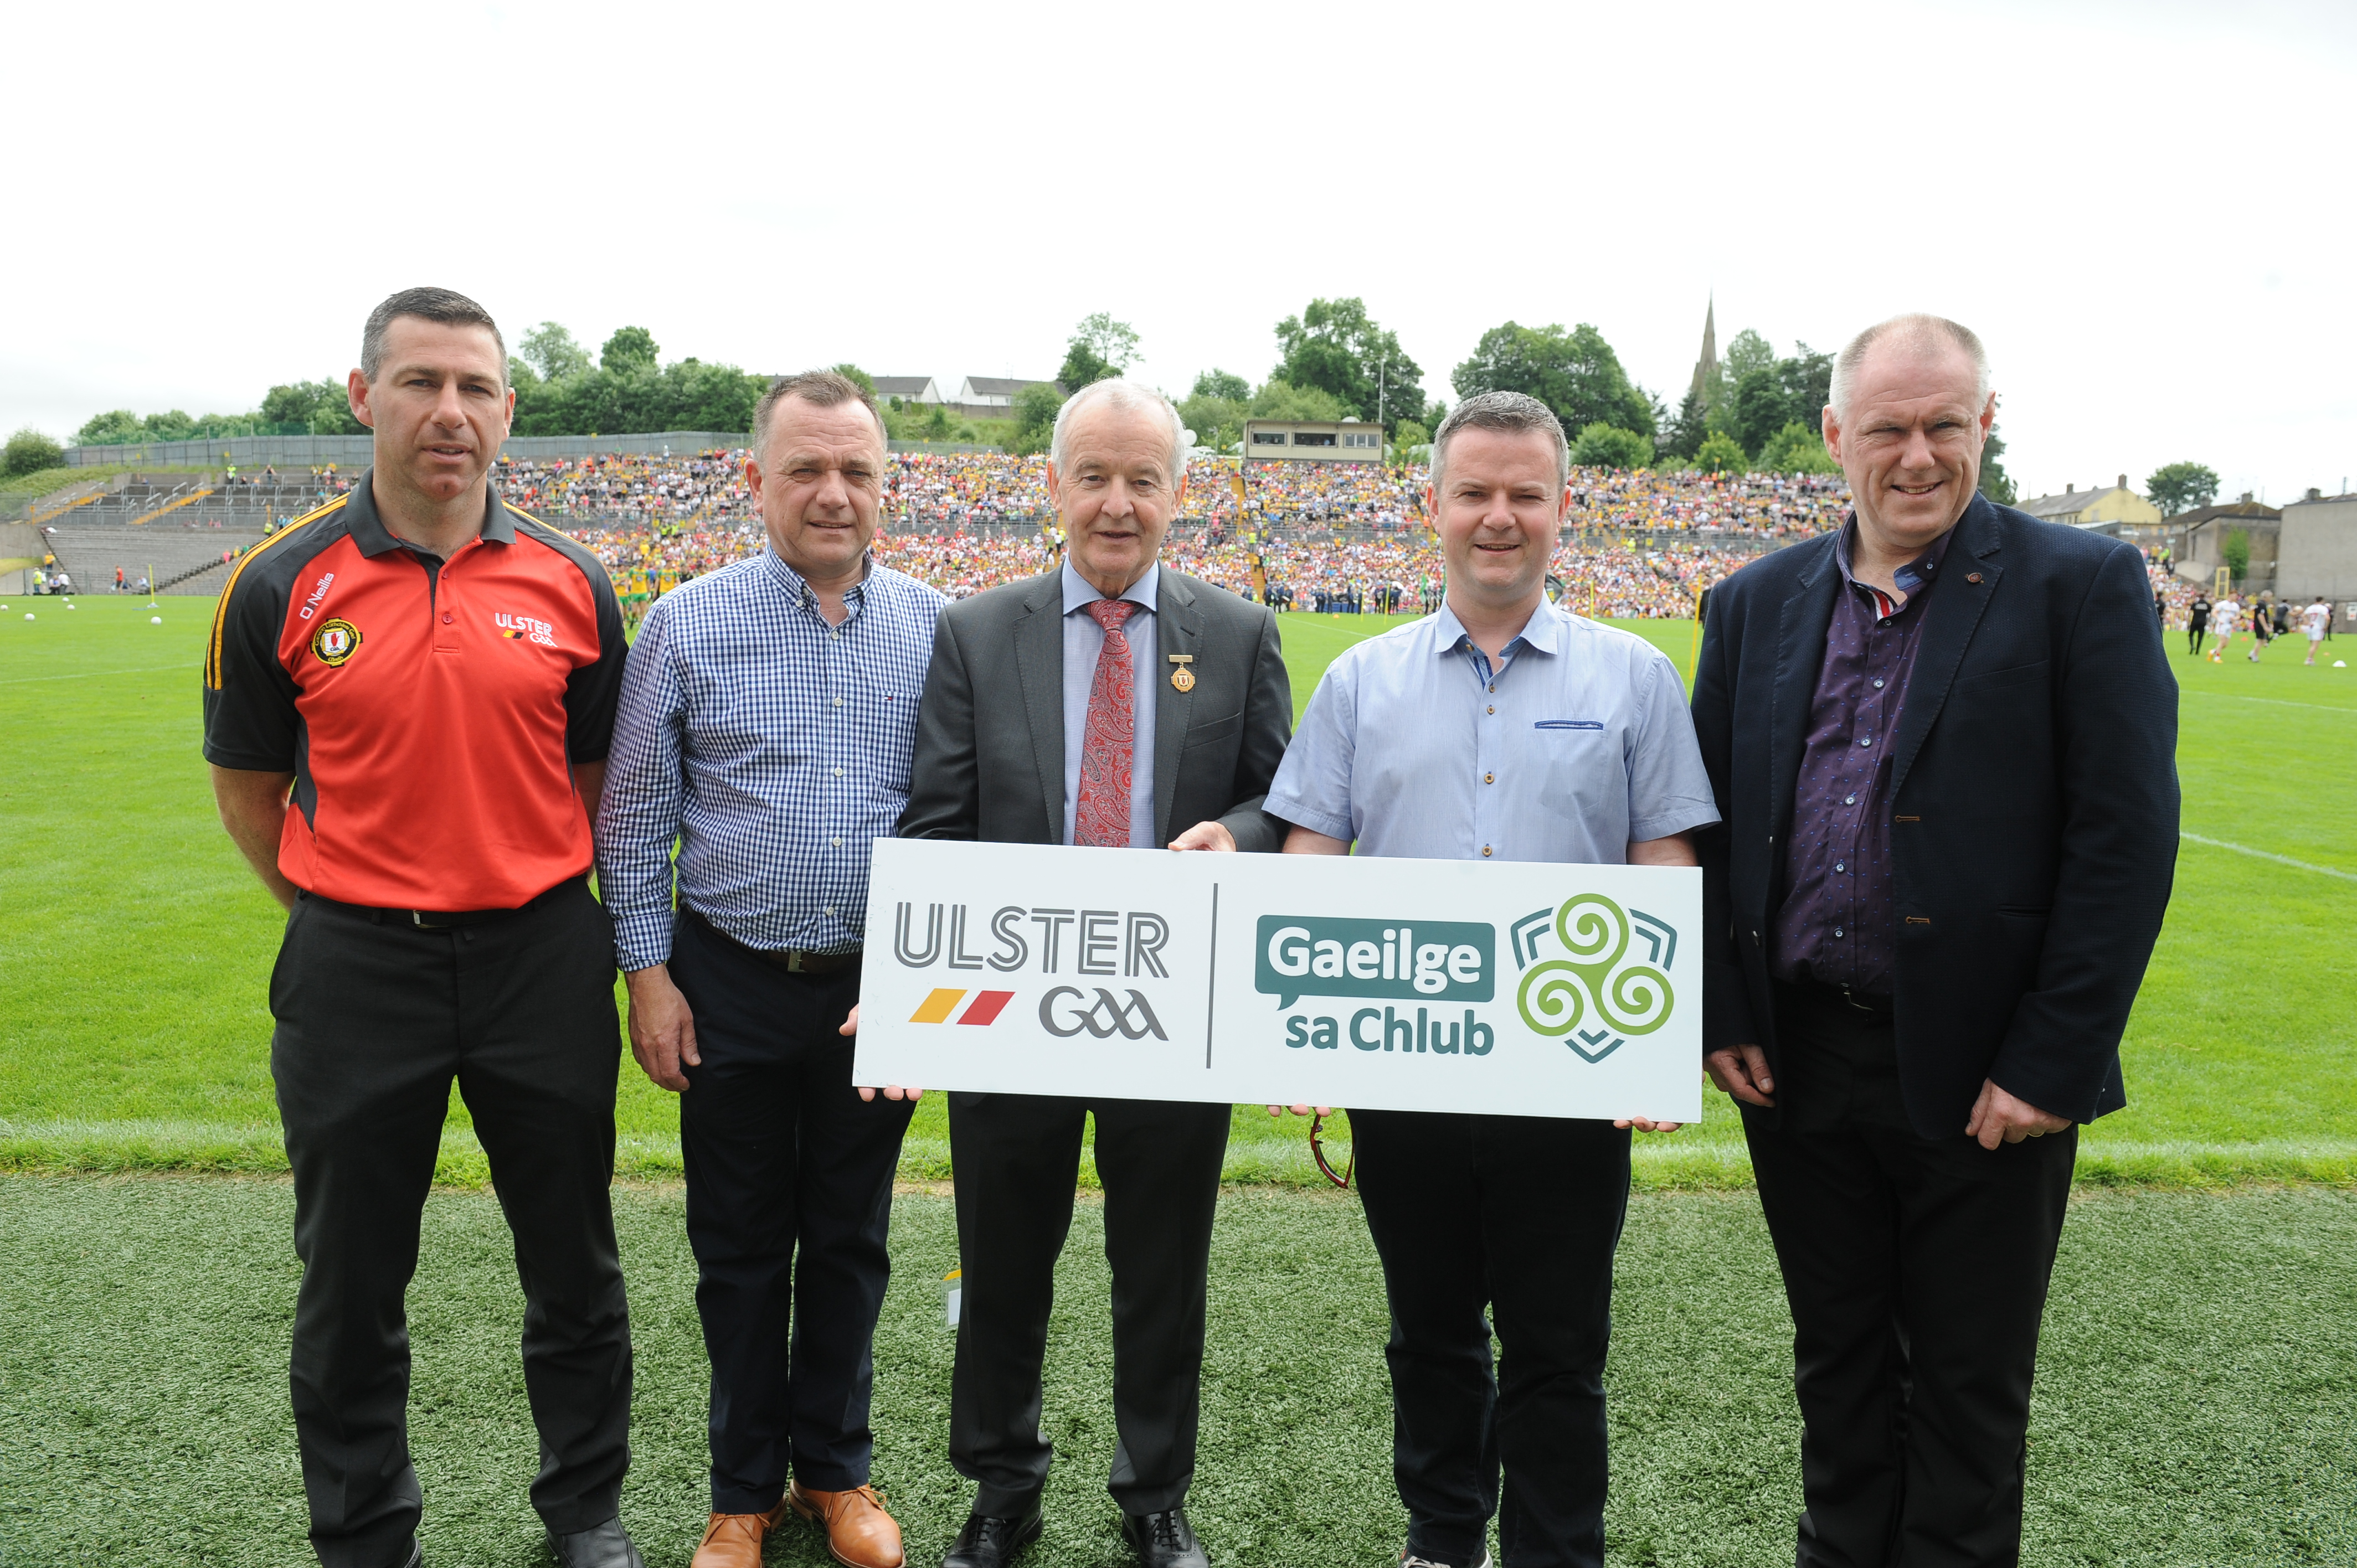 Ulster GAA invests in Irish Study for GAA members